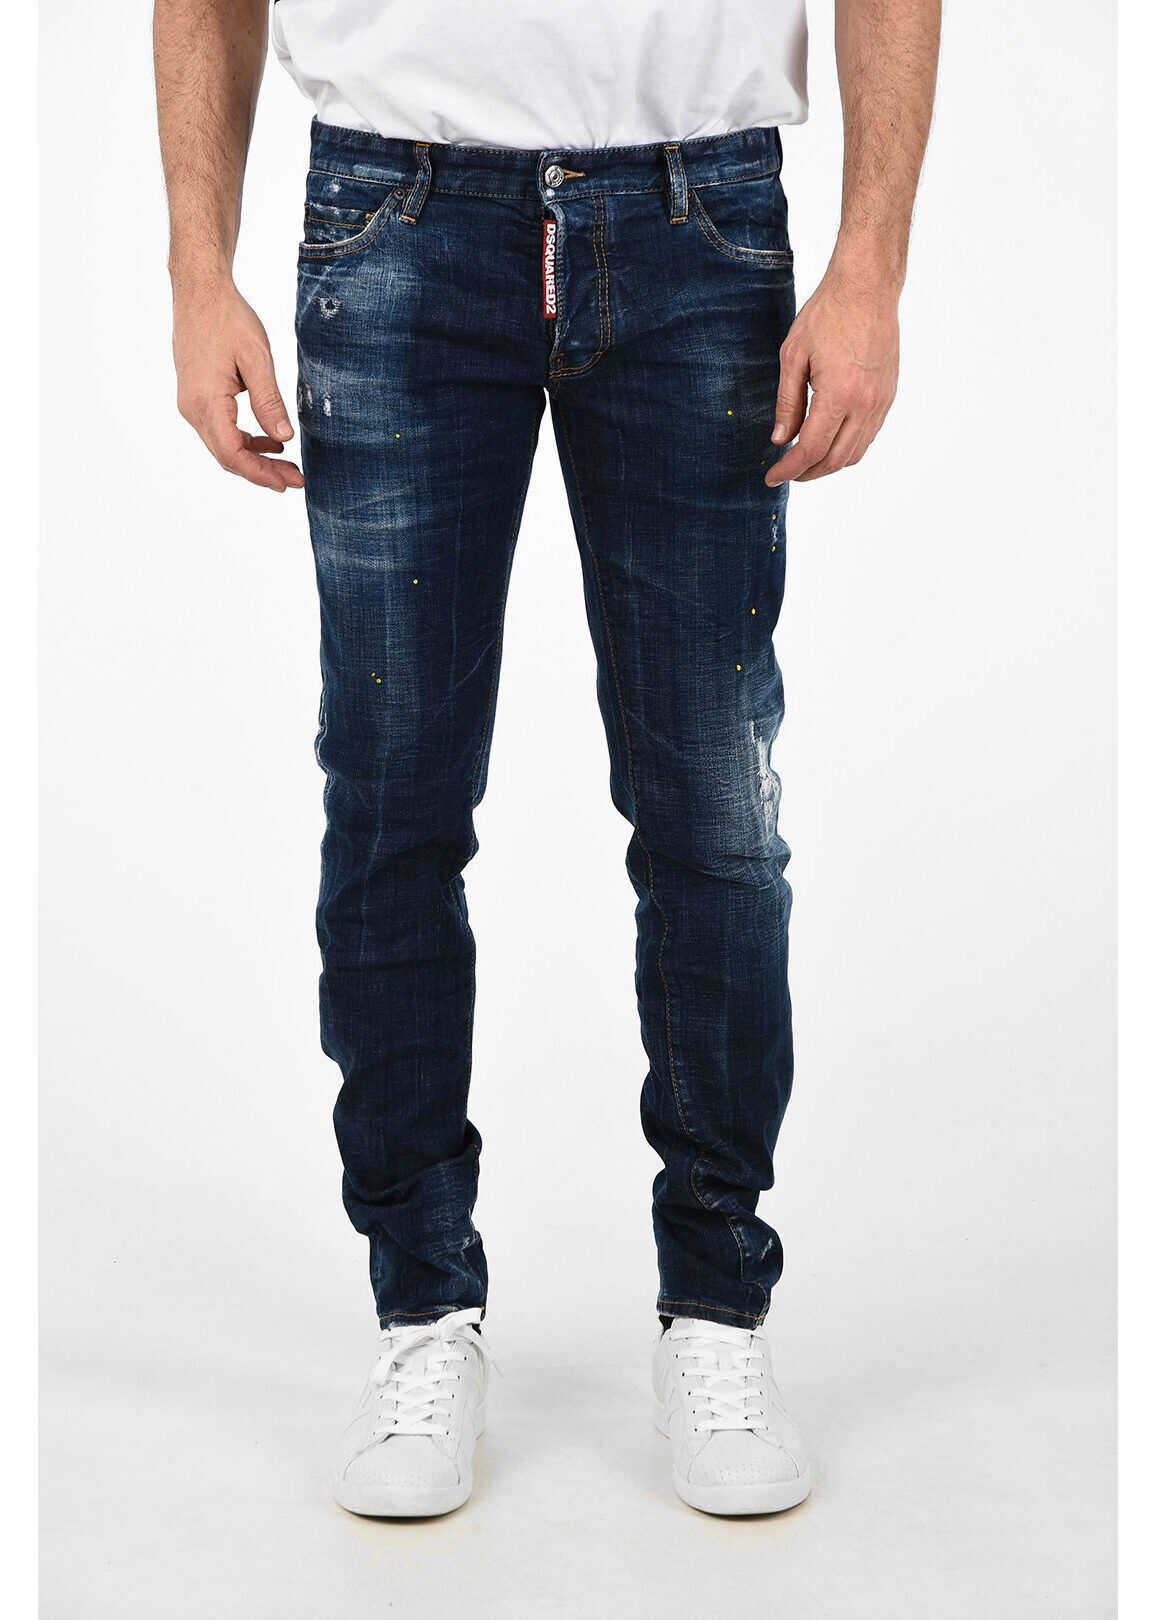 DSQUARED2 16cm Vintage Effect SLIM FIT Jeans BLUE imagine